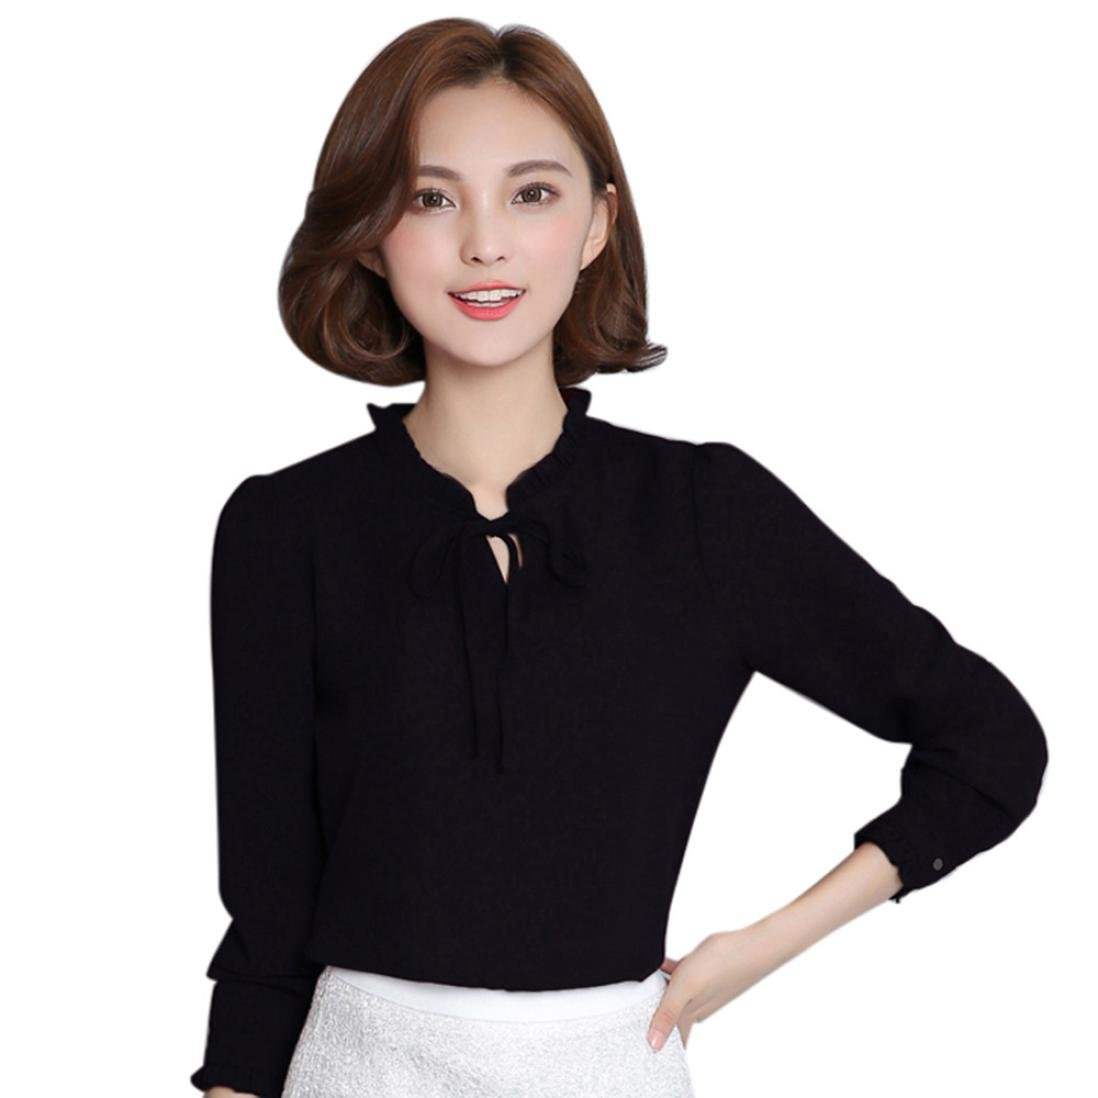 b7baacffb74949 Hot Sale 2018! Women s Casual Chiffon Tie-Bow Neck Long Sleeve Slim Fit  Work Office Tops Blouse at Amazon Women s Clothing store